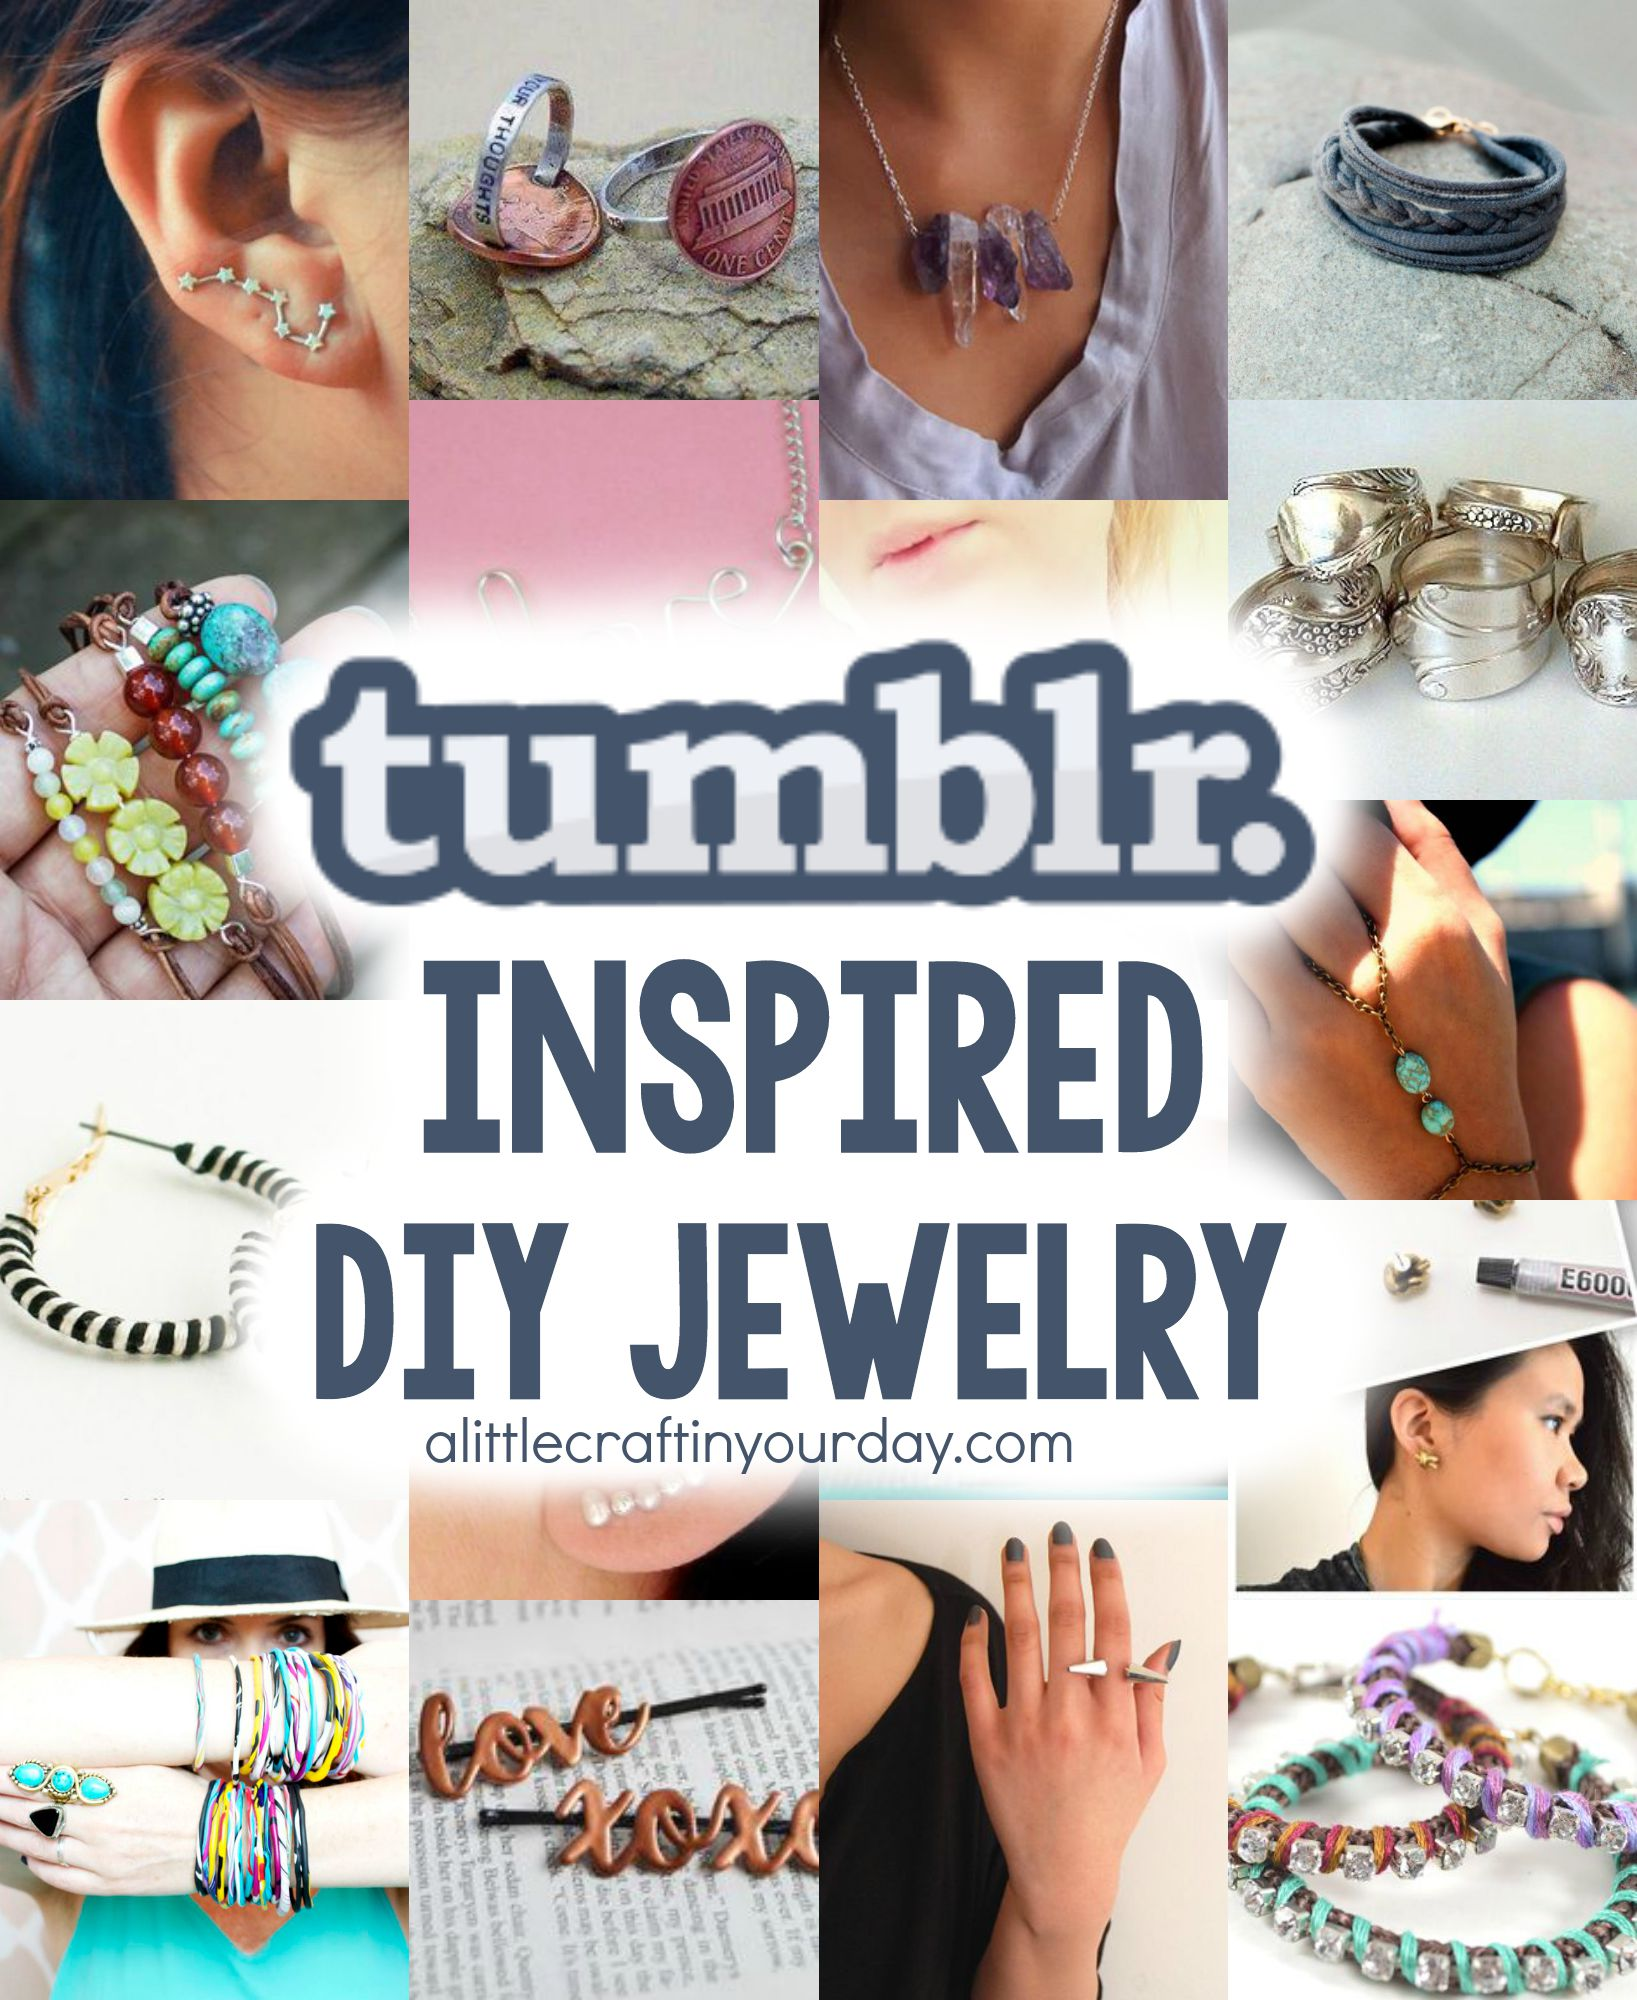 tumblr inspired diy jewelry a little craft in your day. Black Bedroom Furniture Sets. Home Design Ideas